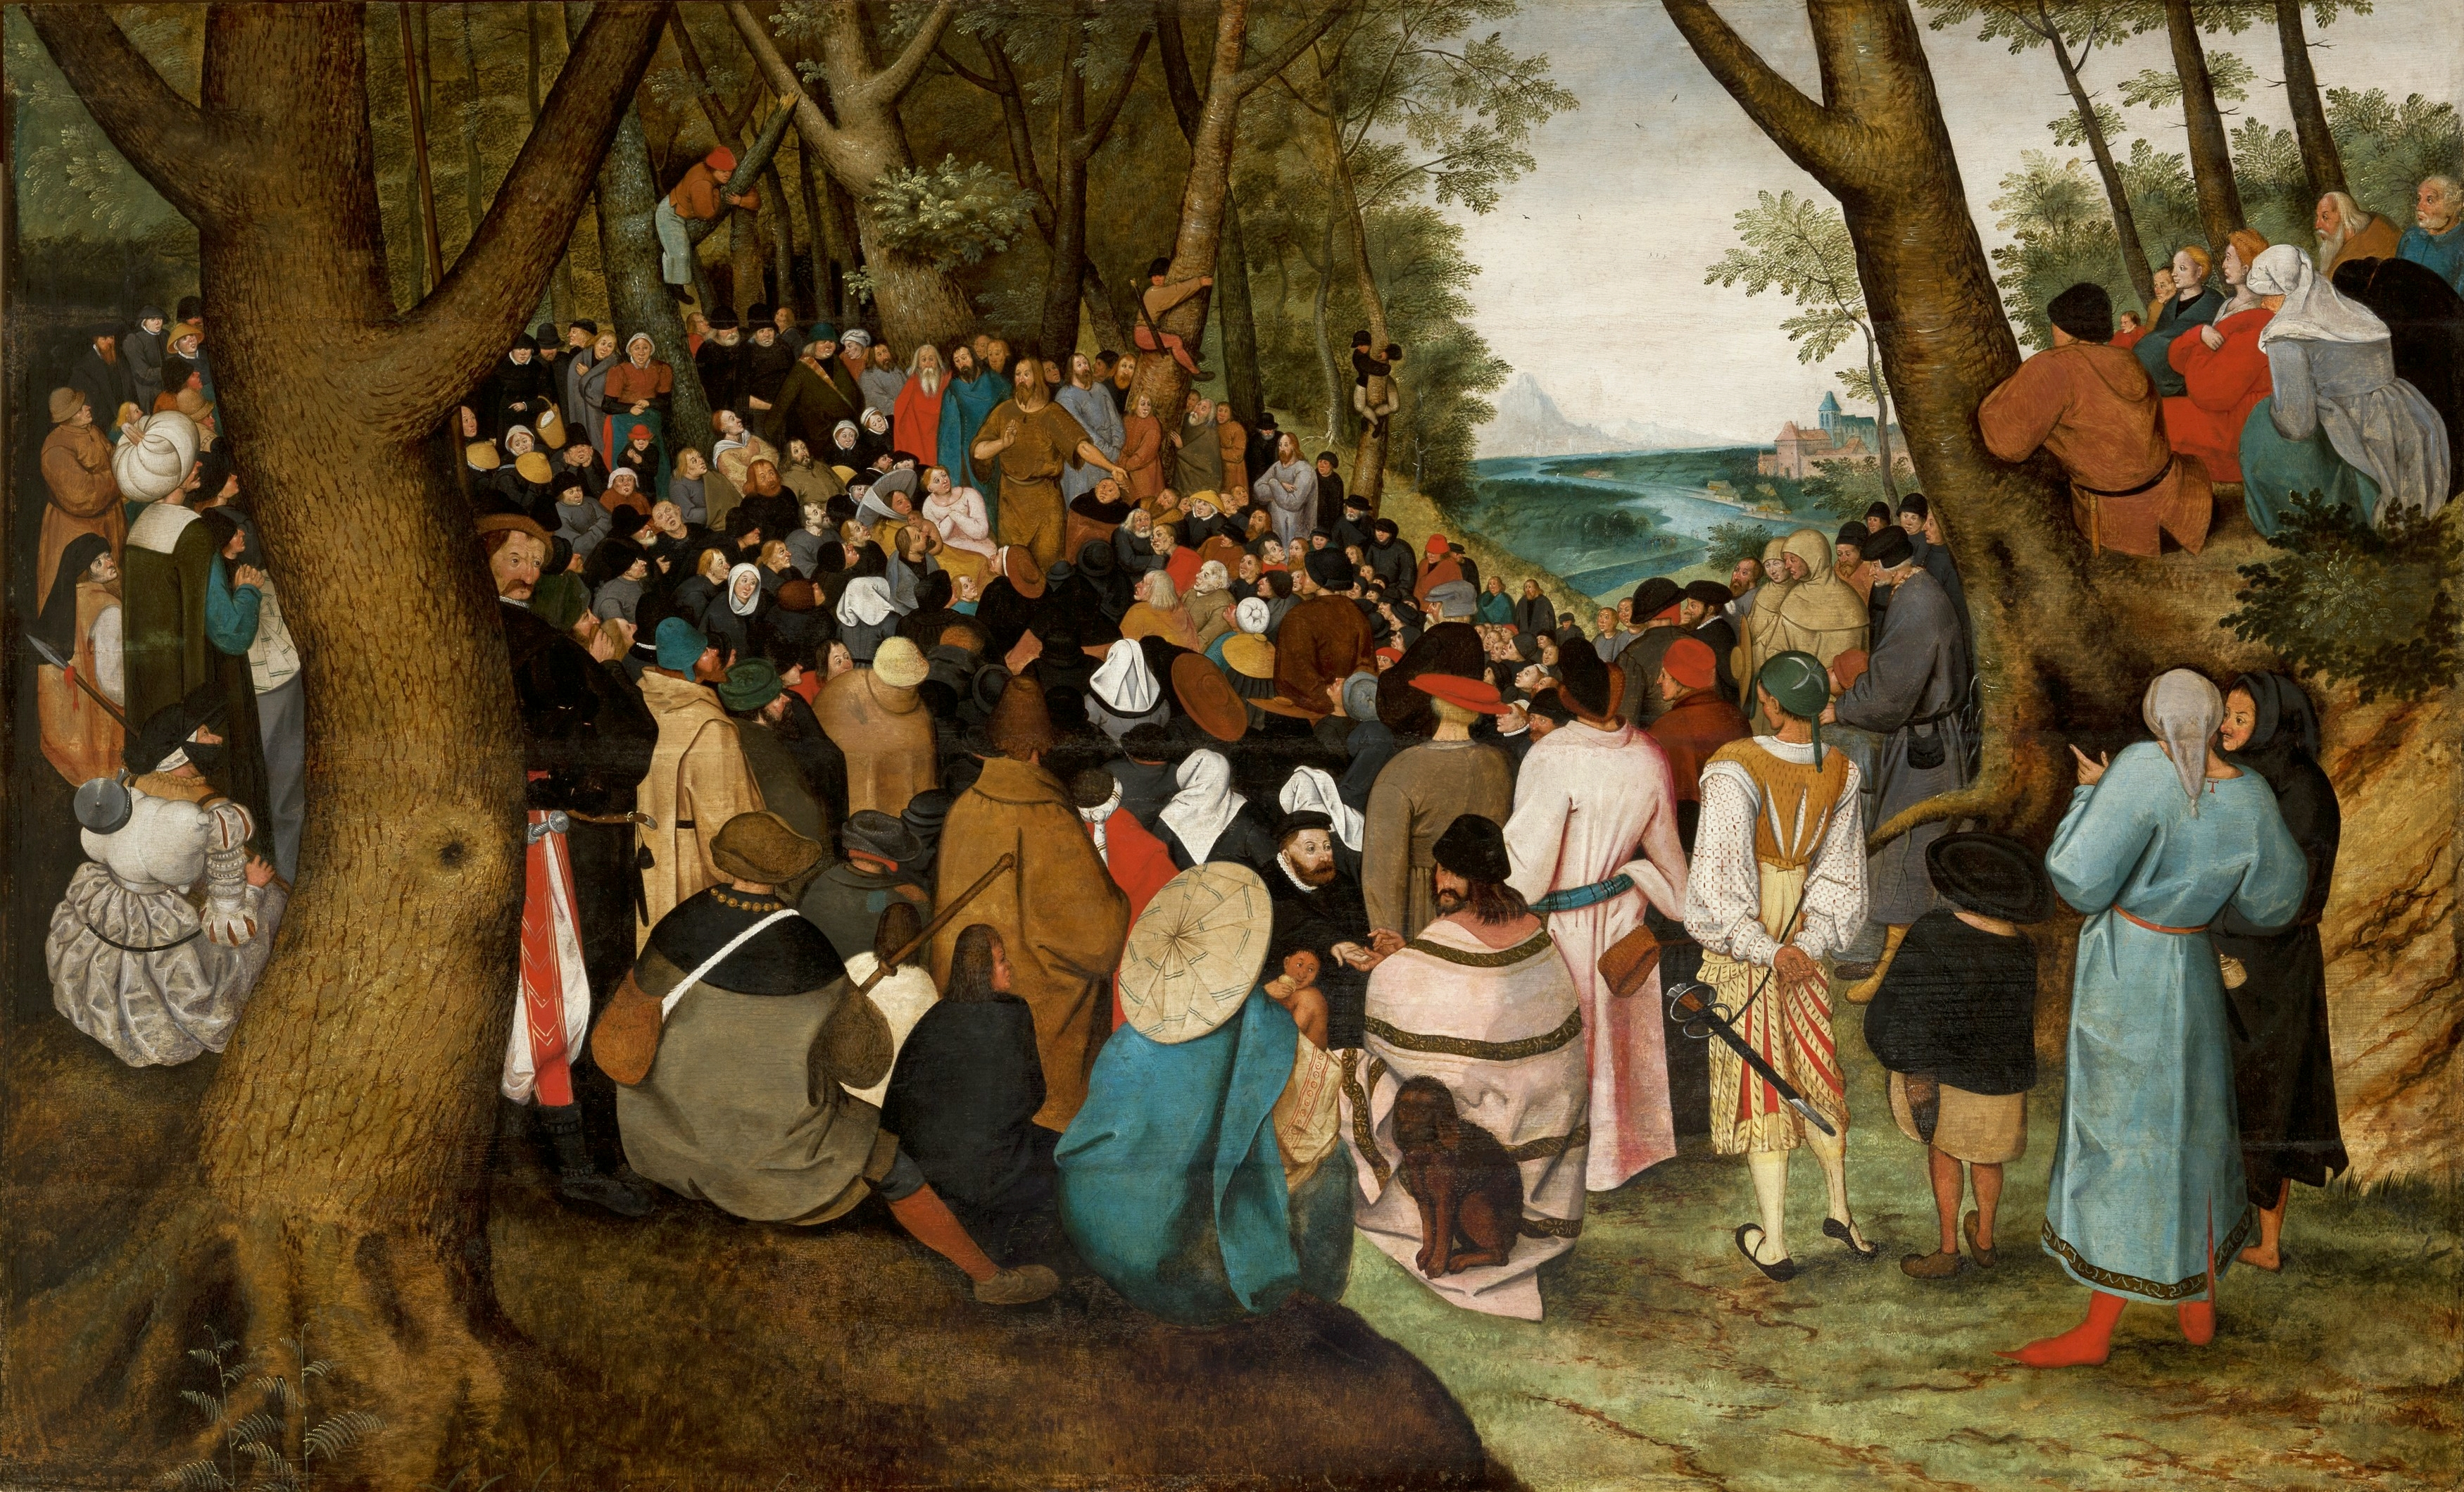 Pieter_Brueghel_The Elder - The Preaching of St. John the Baptish